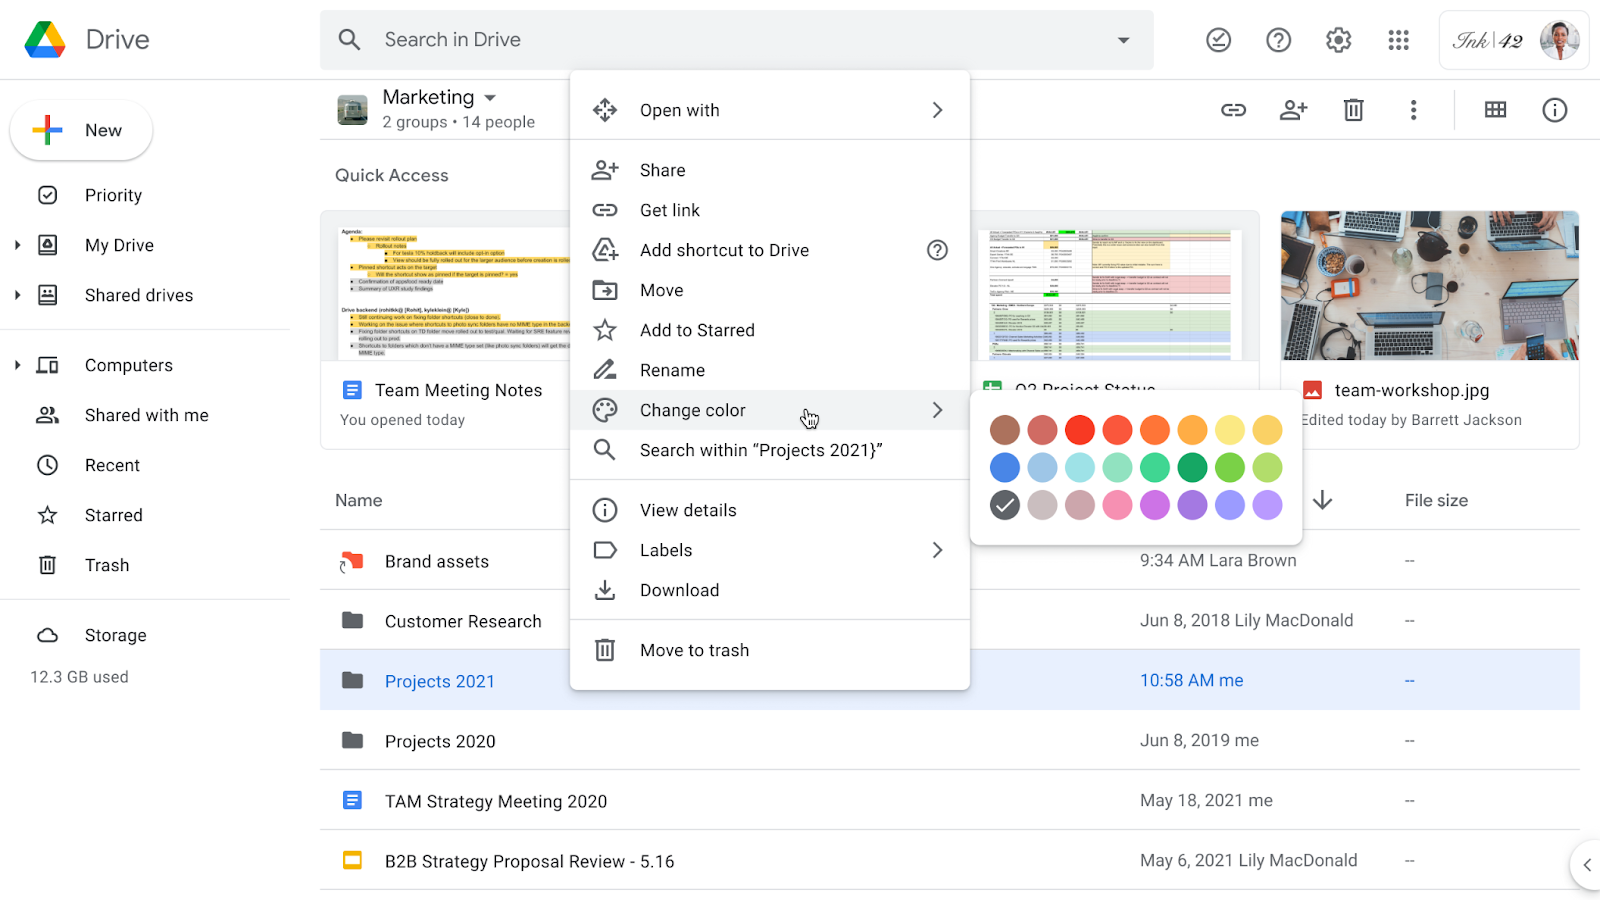 """Google Drive shared drive page, folder drop-down menu is visible, cursor hovers over """"Change color"""" option which shows available colors to choose from."""